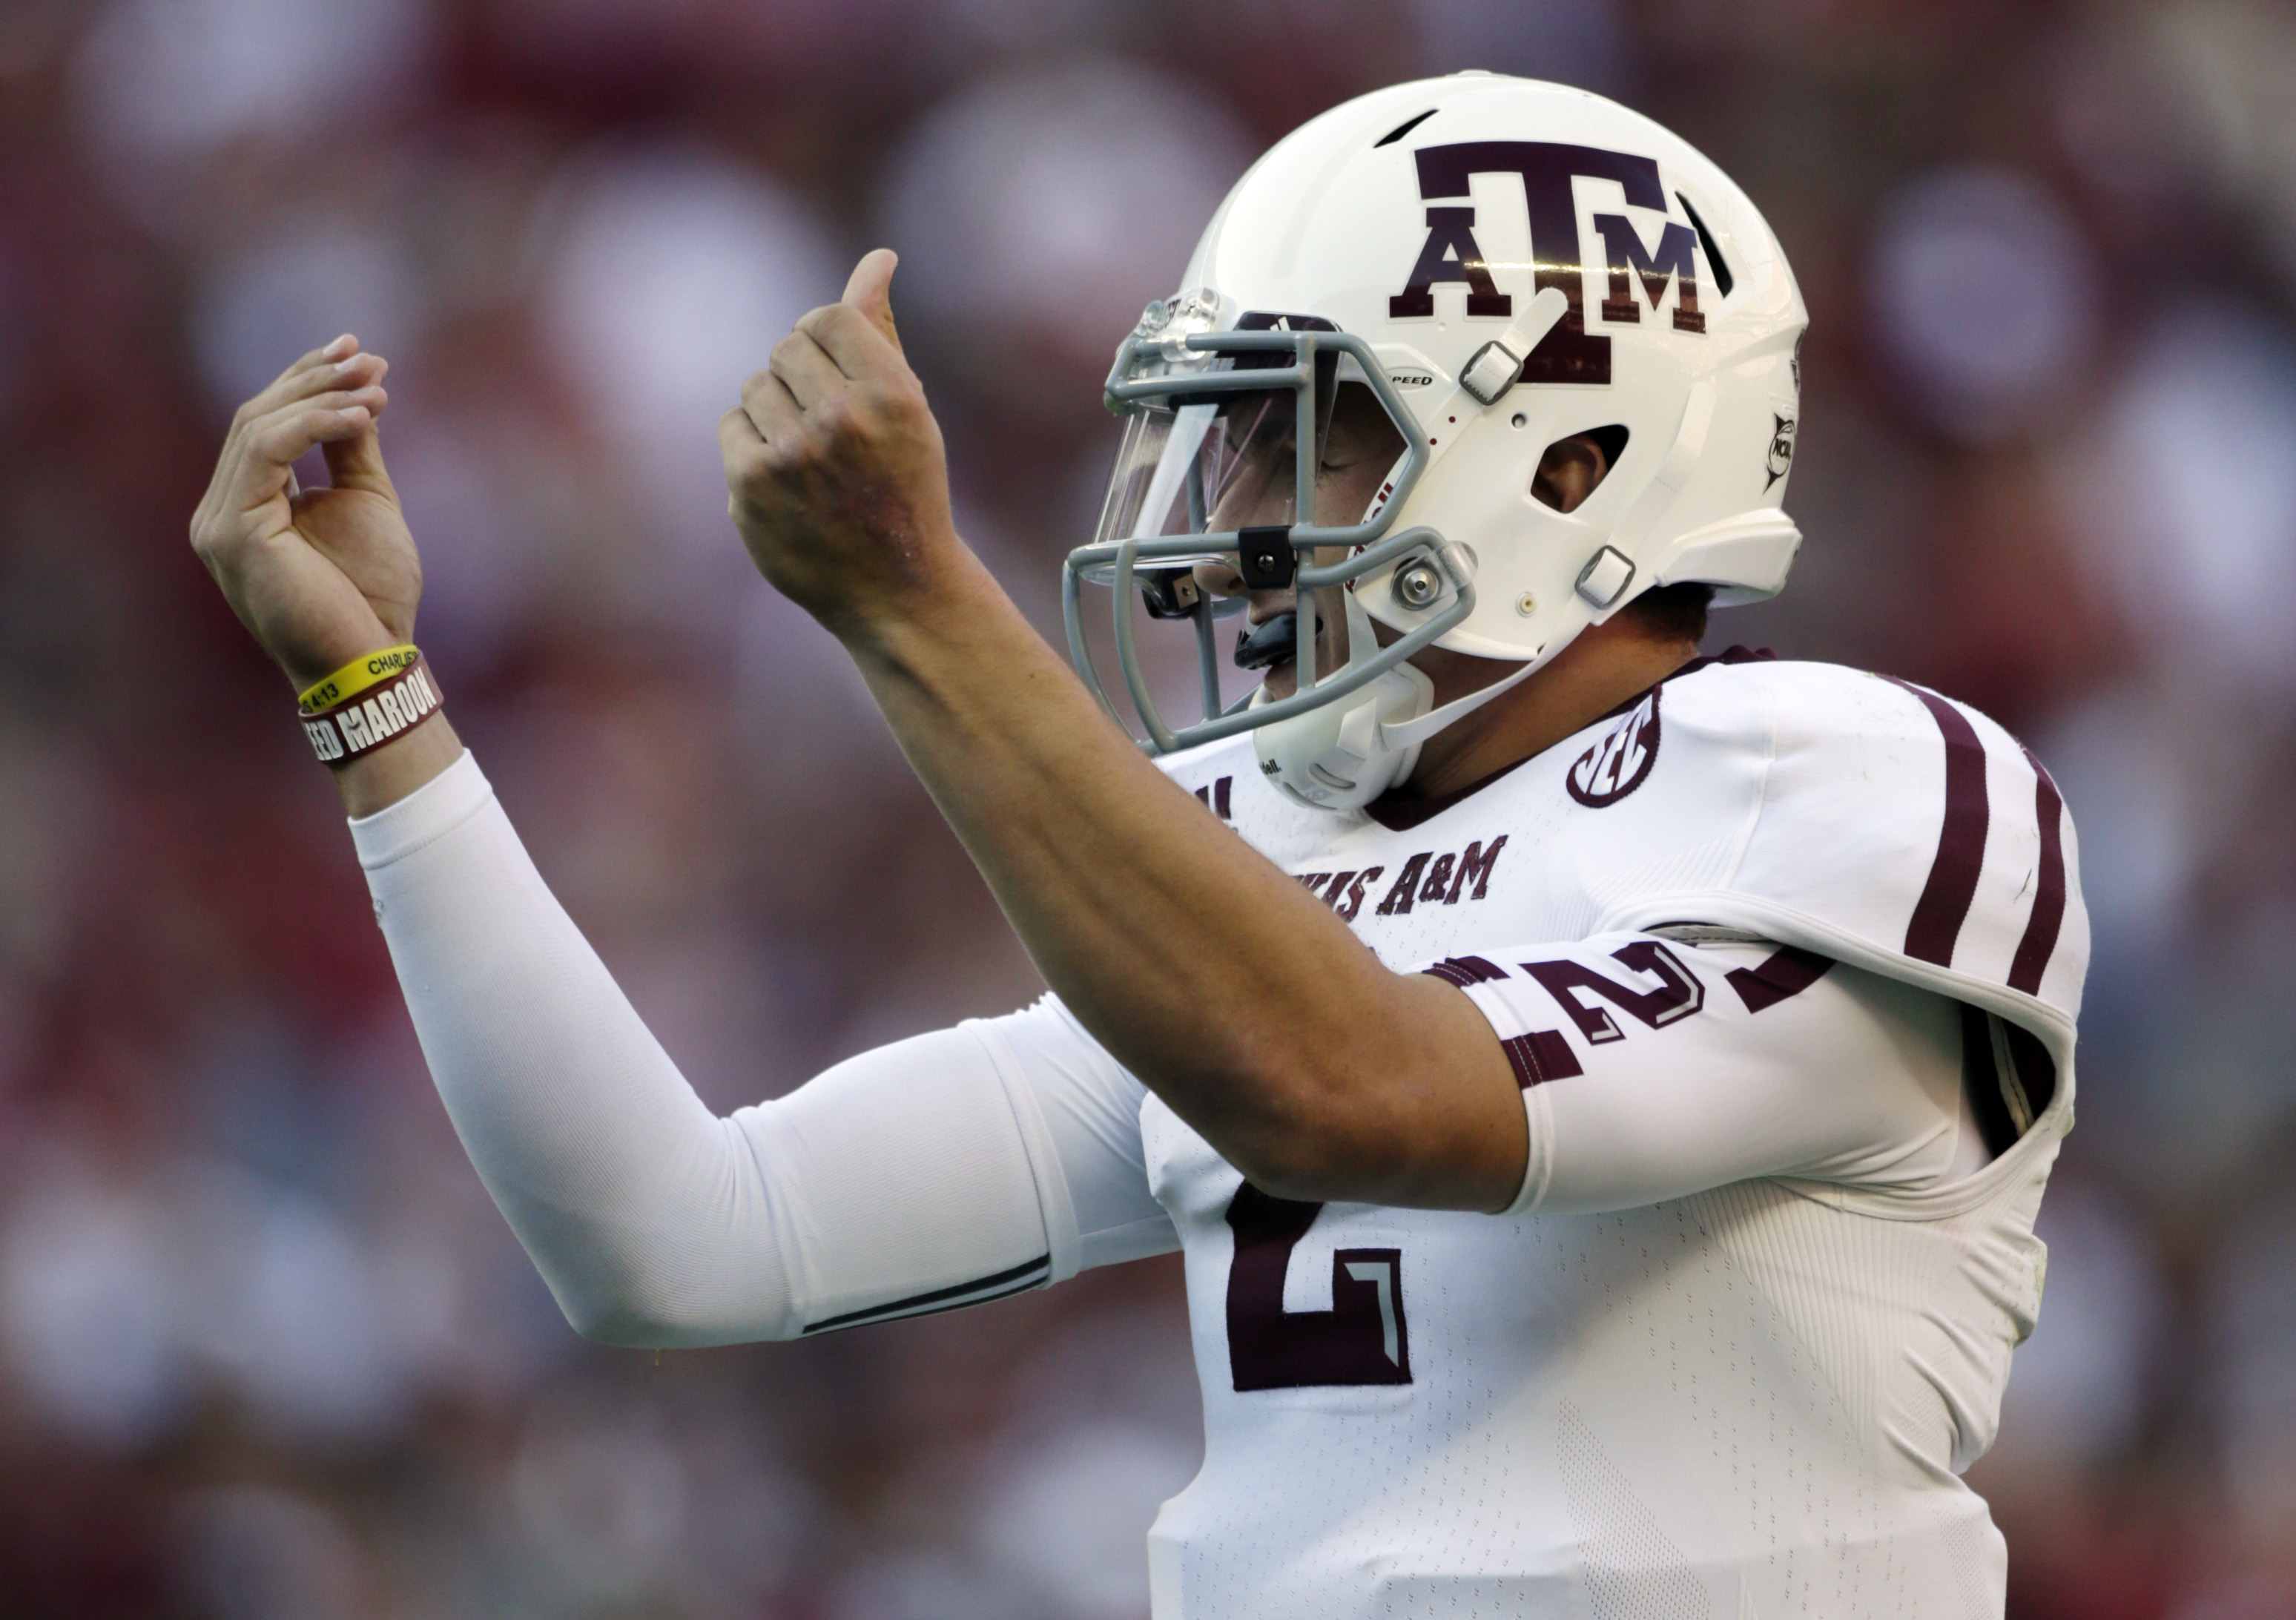 Texas A&M quarterback Johnny Manziel (2) reacts after the Aggies scored their third touchdown of the first quarter against Alabama during the first half of an NCAA college football game at Bryant-Denny Stadium in Tuscaloosa, Ala., Saturday, Nov. 10, 2012. (AP Photo/Dave Martin)